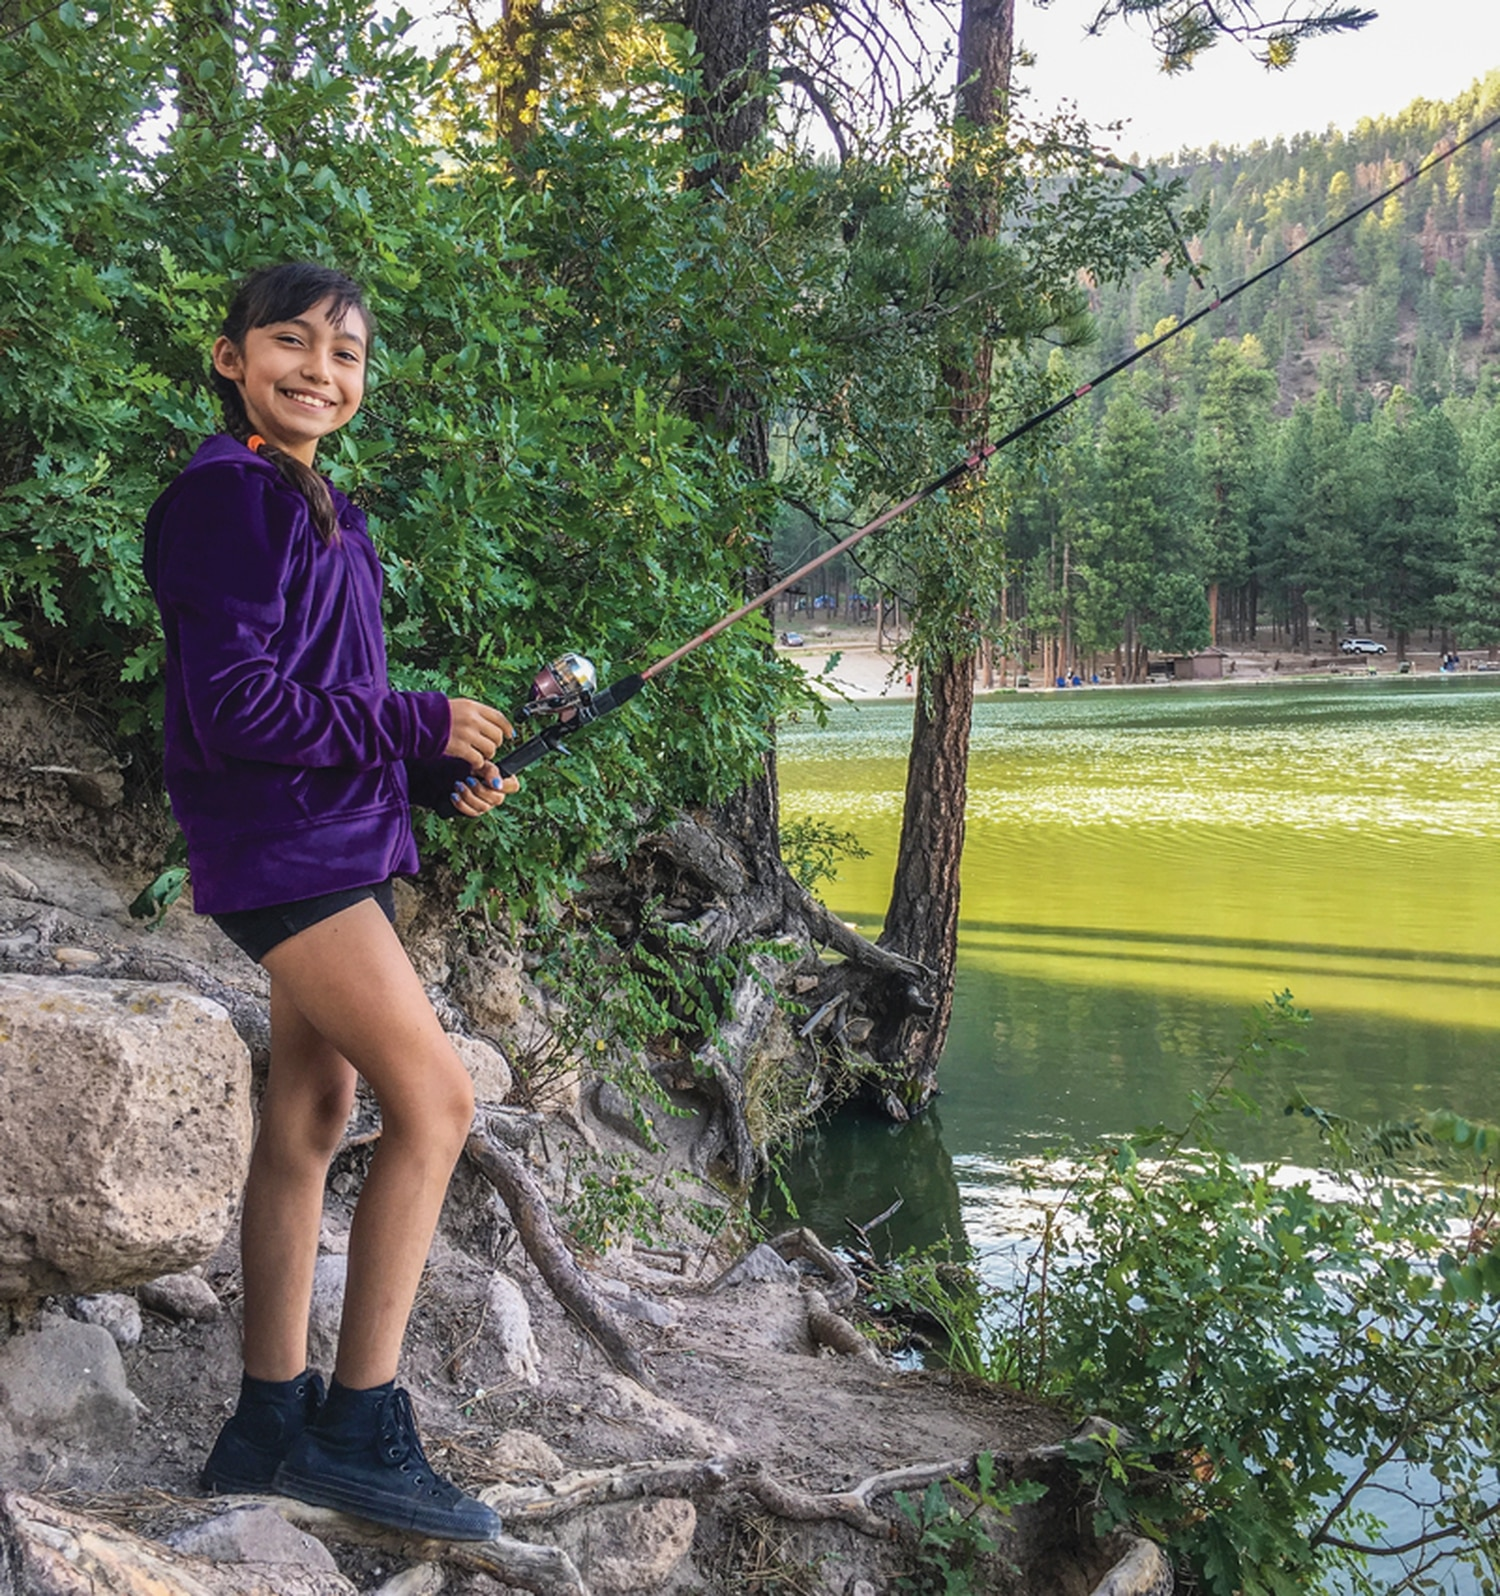 Naomi Aguilar fishes at Fenton Lake with the New Mexico Youth Conservation Corps, which will be calling for proposals in late spring that provide outdoor recreation and education opportunities for the state's youth.